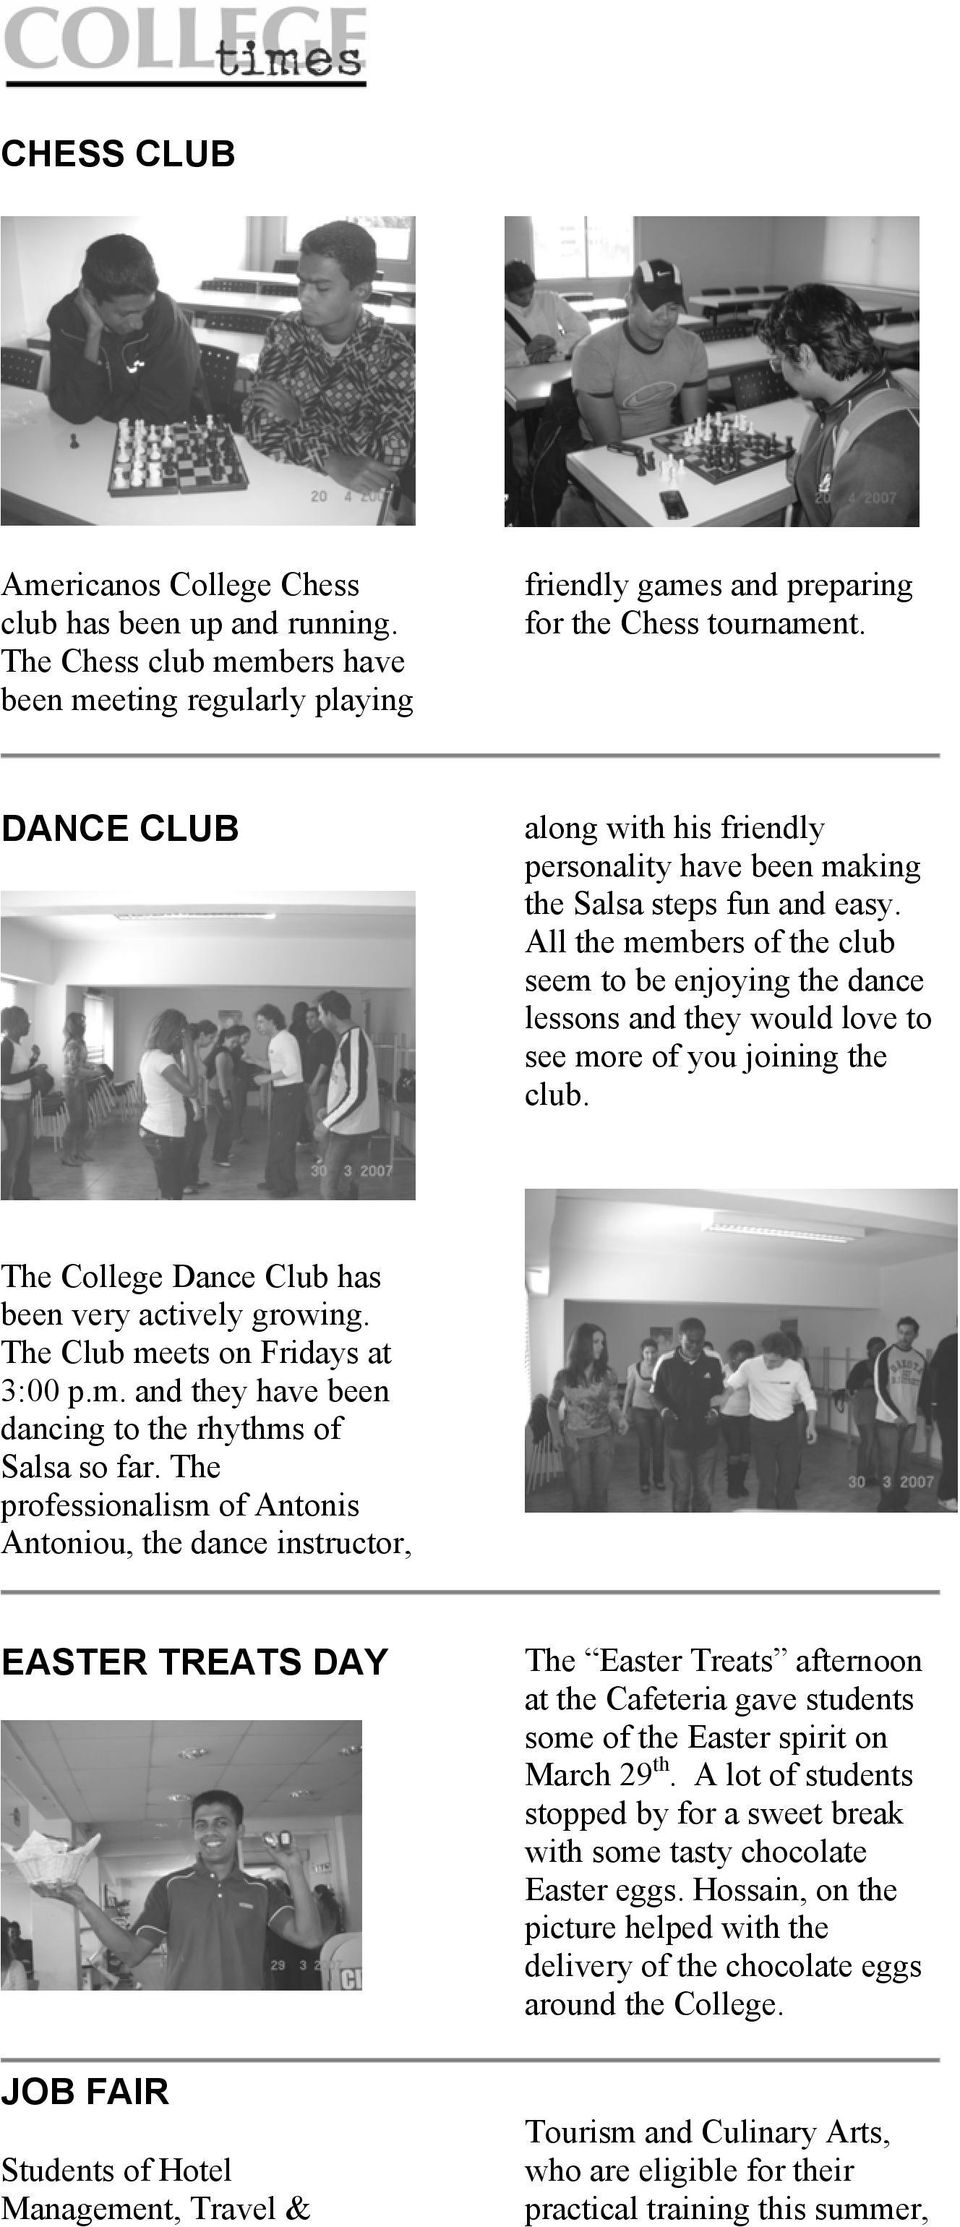 All the members of the club seem to be enjoying the dance lessons and they would love to see more of you joining the club. The College Dance Club has been very actively growing.